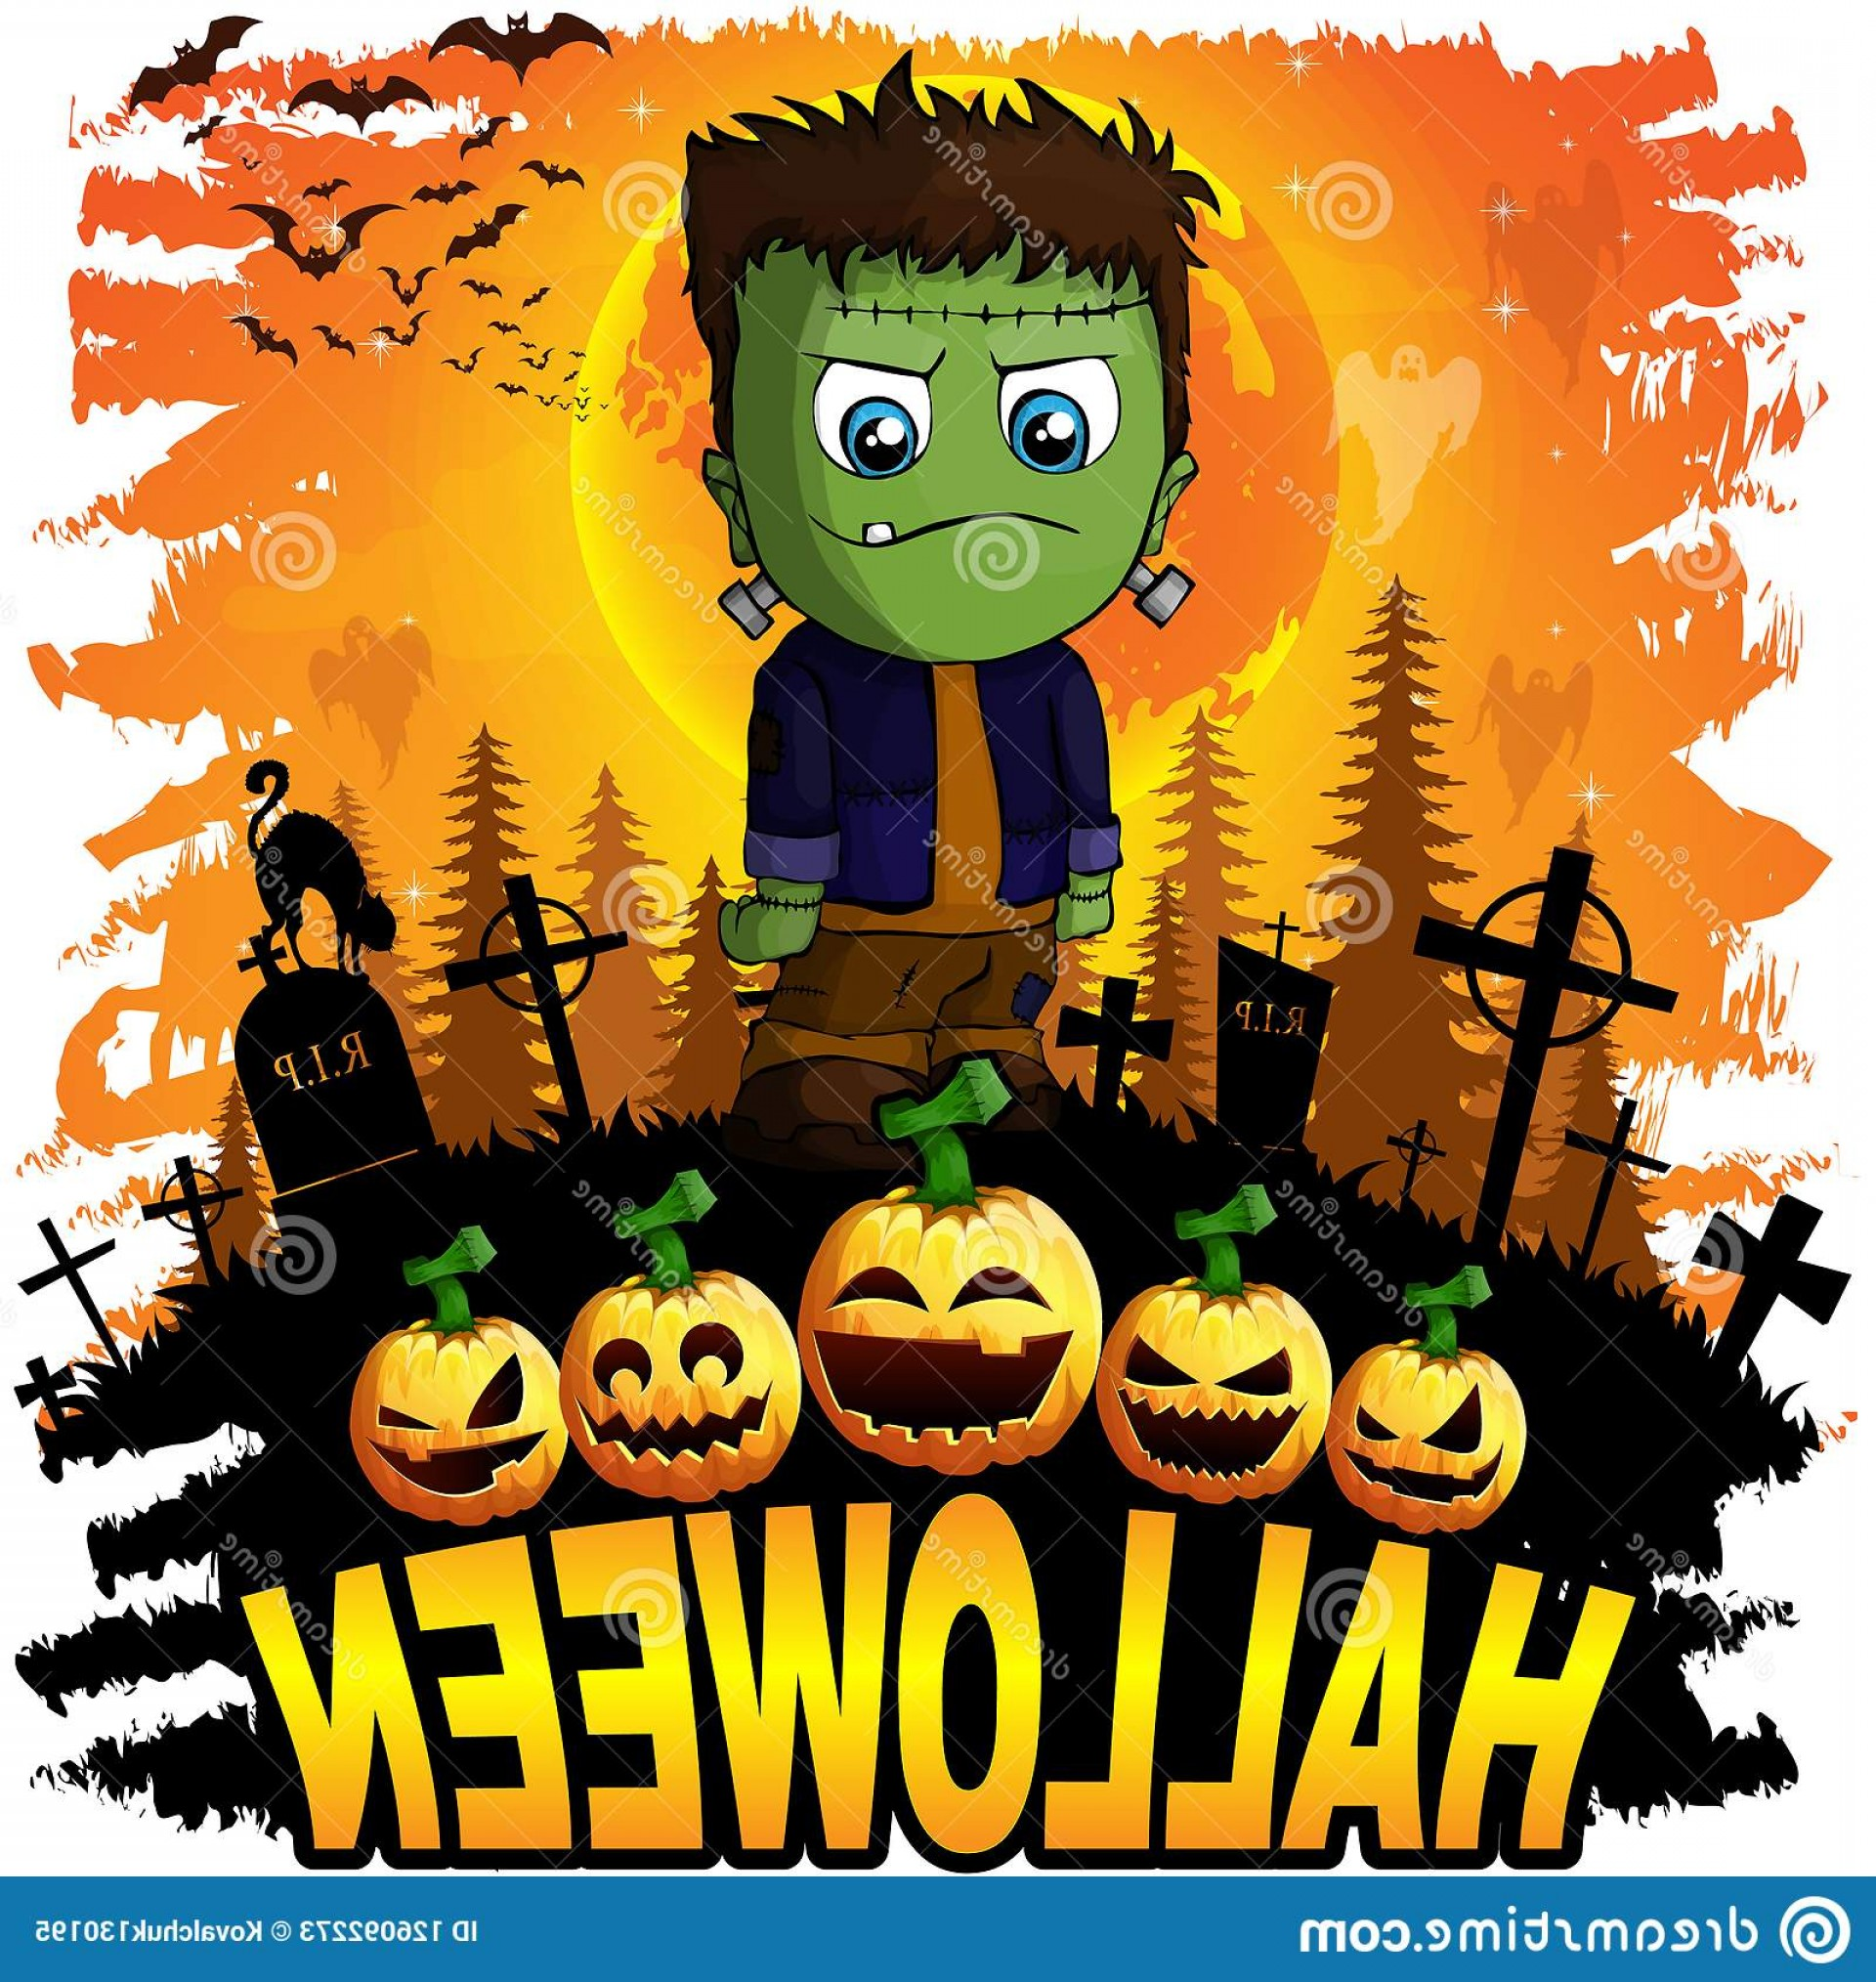 Frankenstein Vector Poster: Halloween Design Template Frankenstein Halloween Design Template Frankenstein Vector Illustration Image